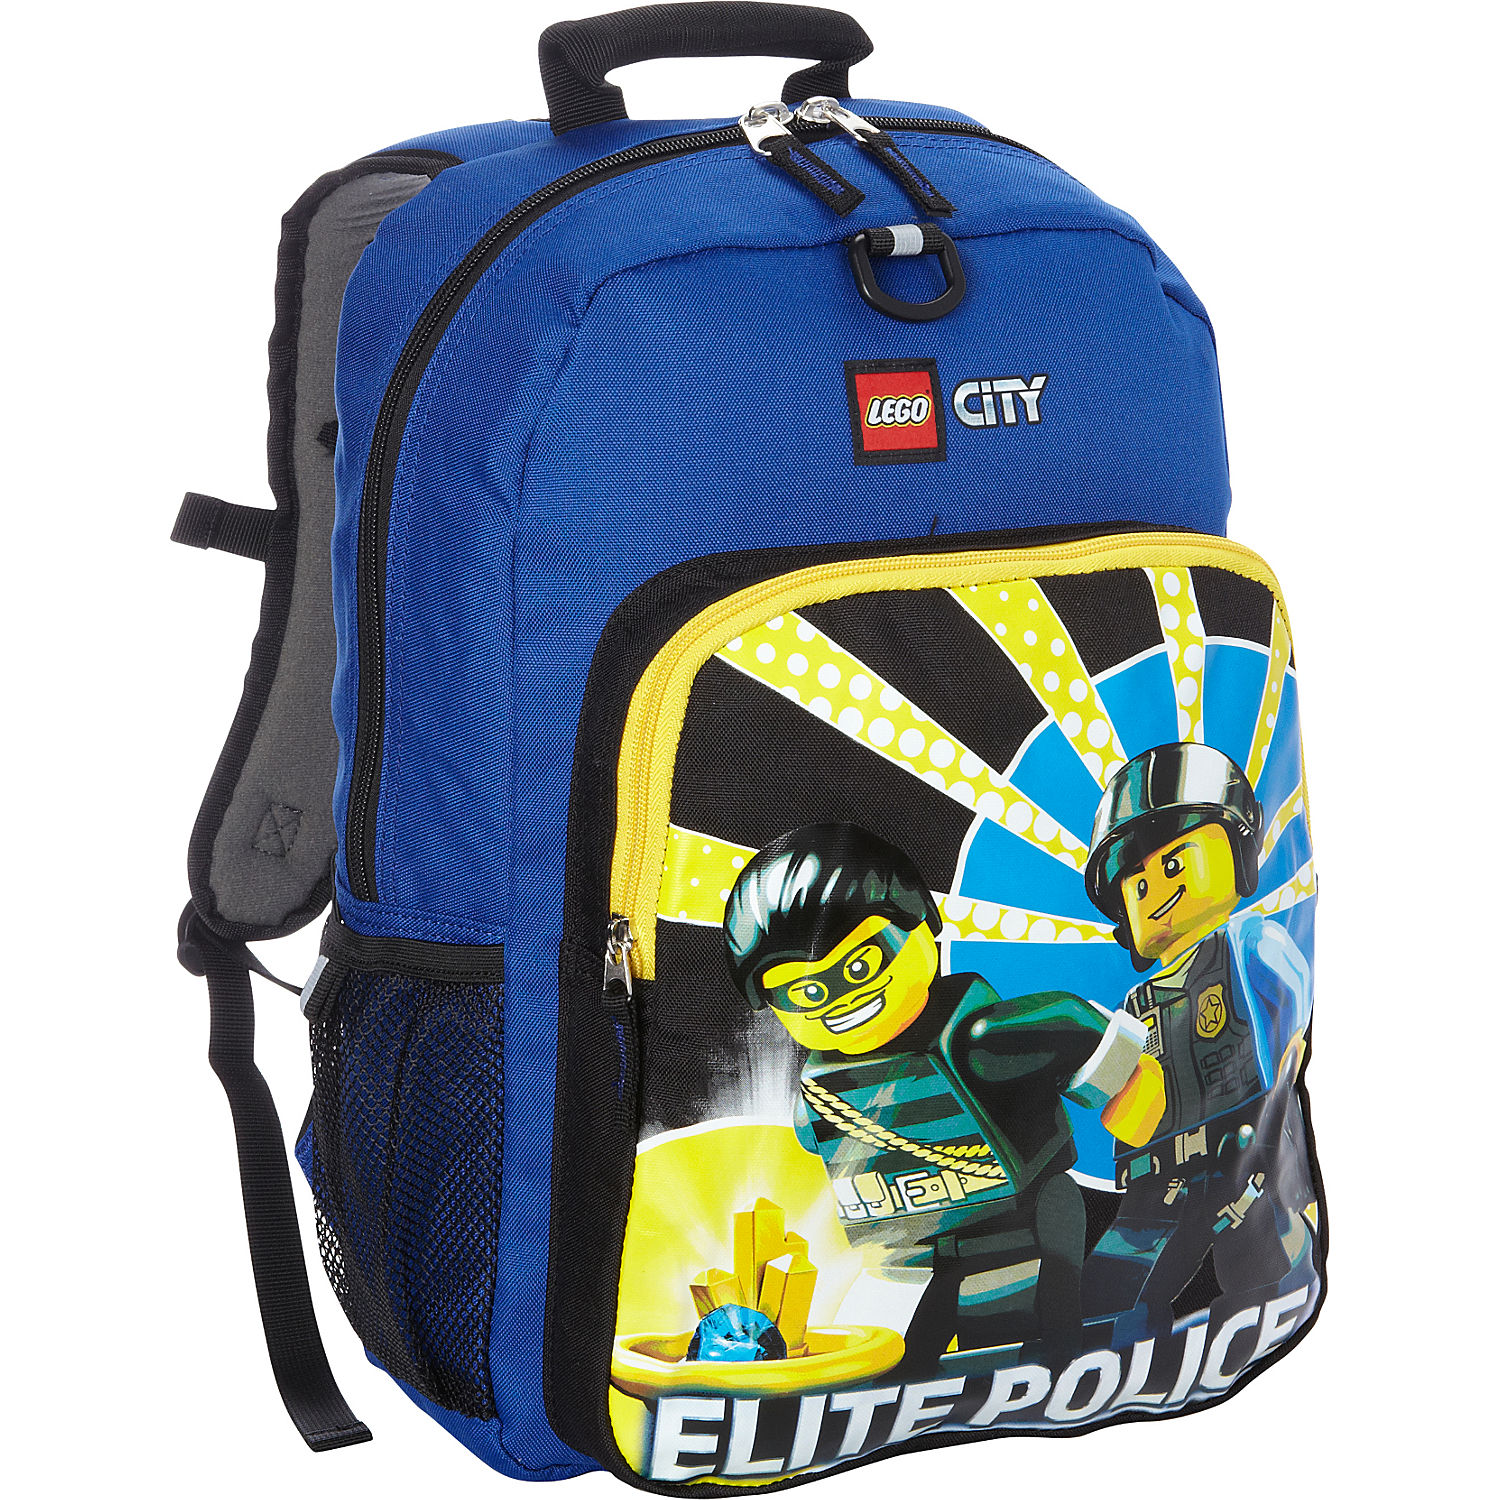 318463 likewise Samsonite 20 Wheeled Backpack together with Playmobil Ambulance p 1587 further Samsonite Solyte 25 Expandable Spinner furthermore Mcklein W Series Win ka Leather Ladies Briefcase With Removable Sleeve. on golf cart bag review